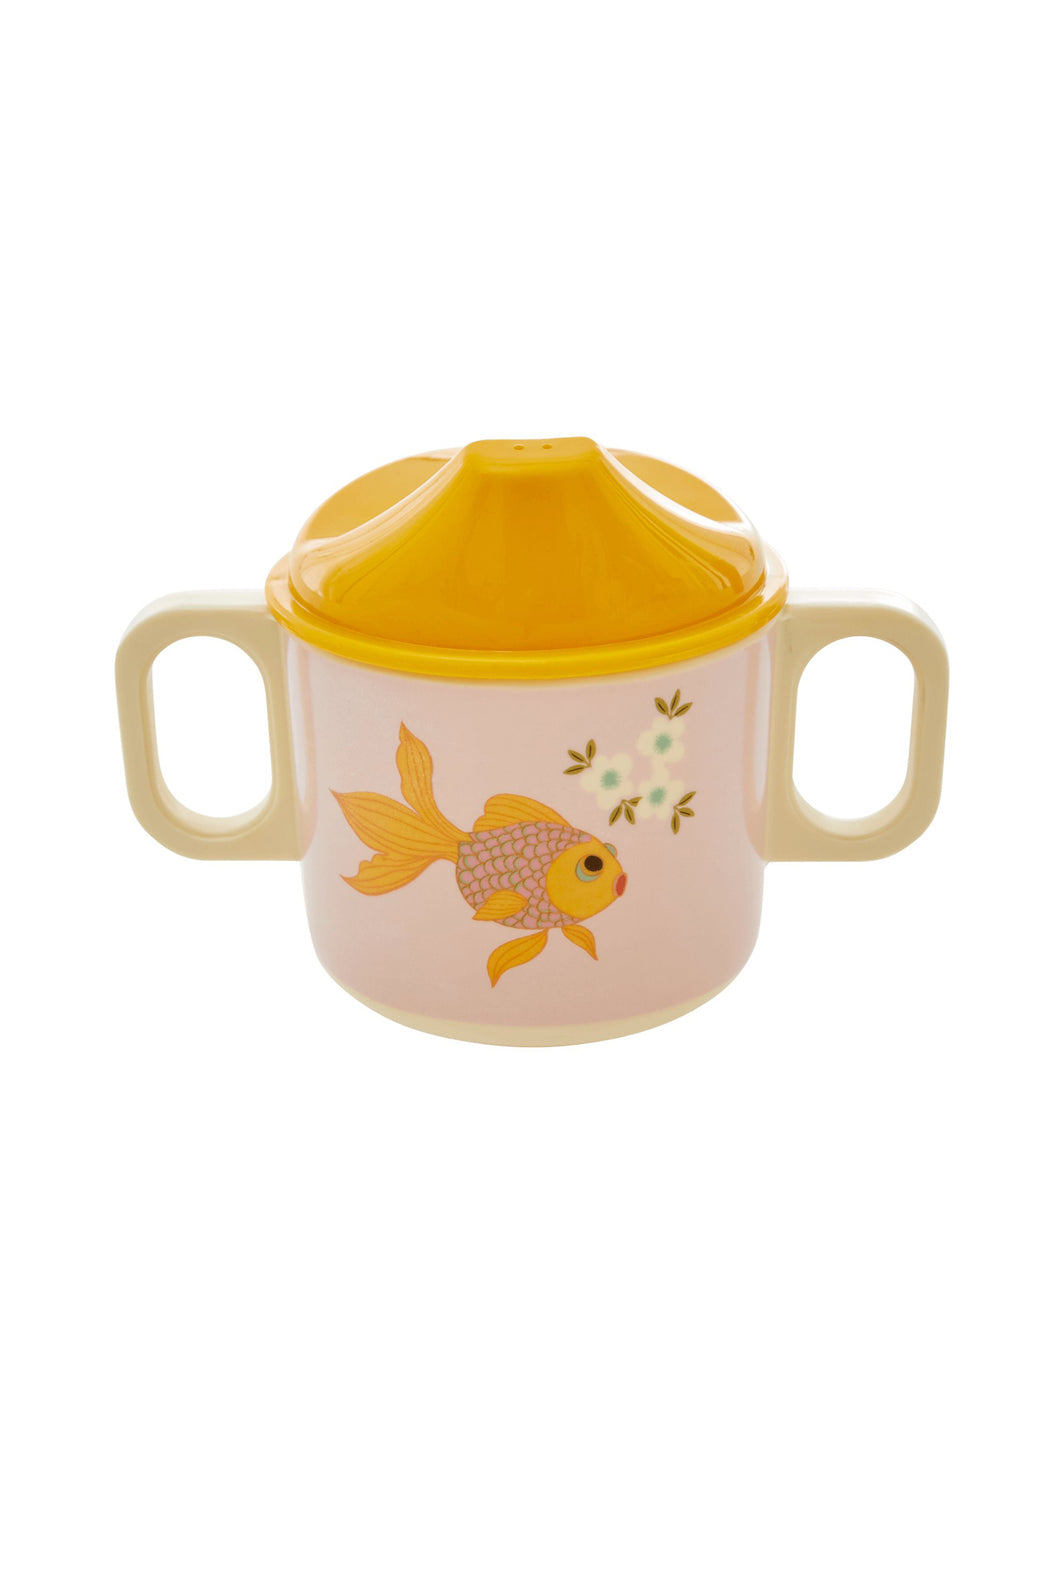 Goldfish Print 2 Handle Melamine Baby Cup